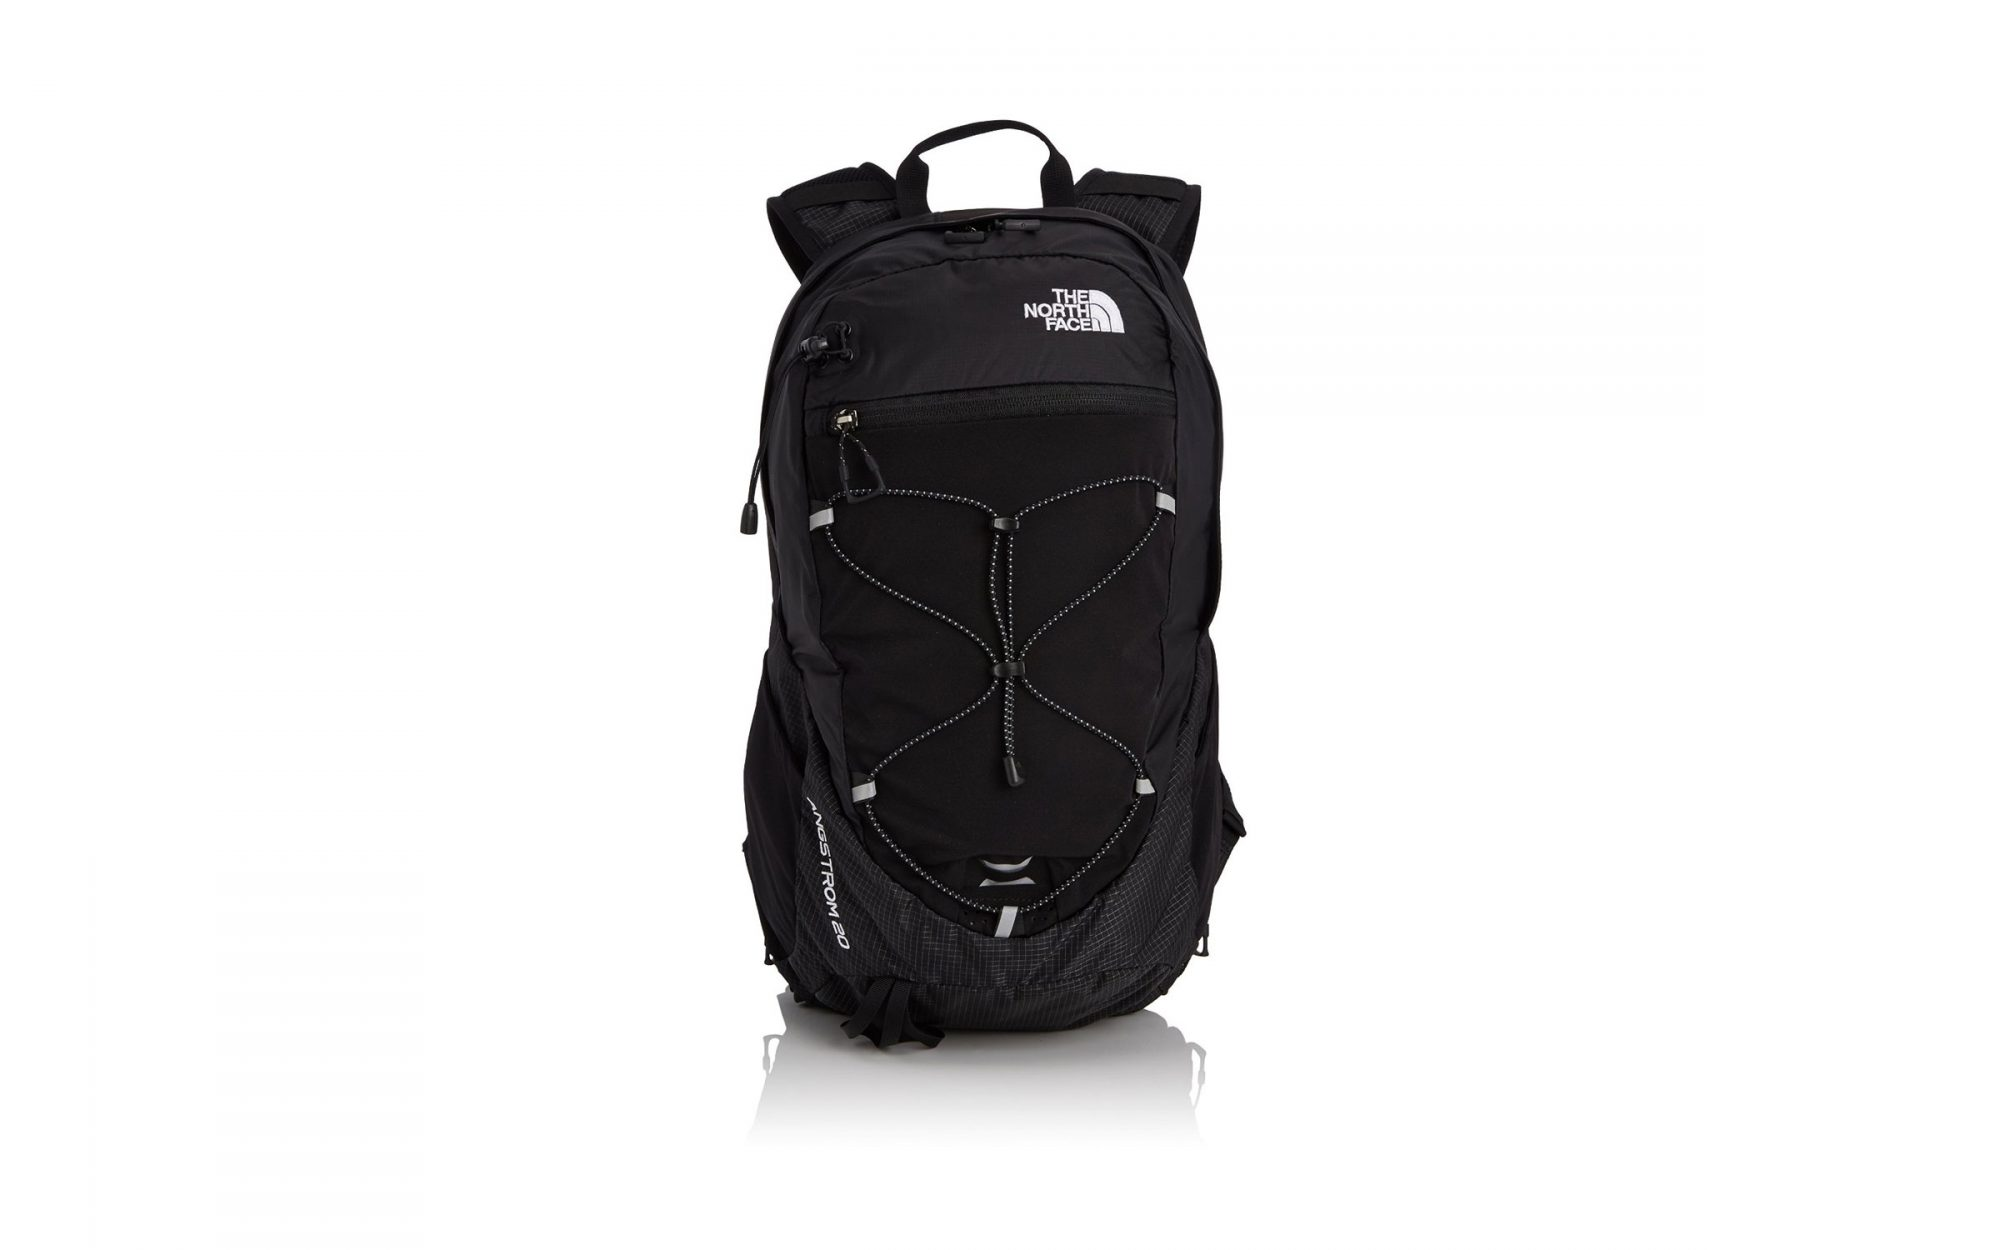 9d6afca4f The Best Hiking Backpacks for Travelers | Travel + Leisure